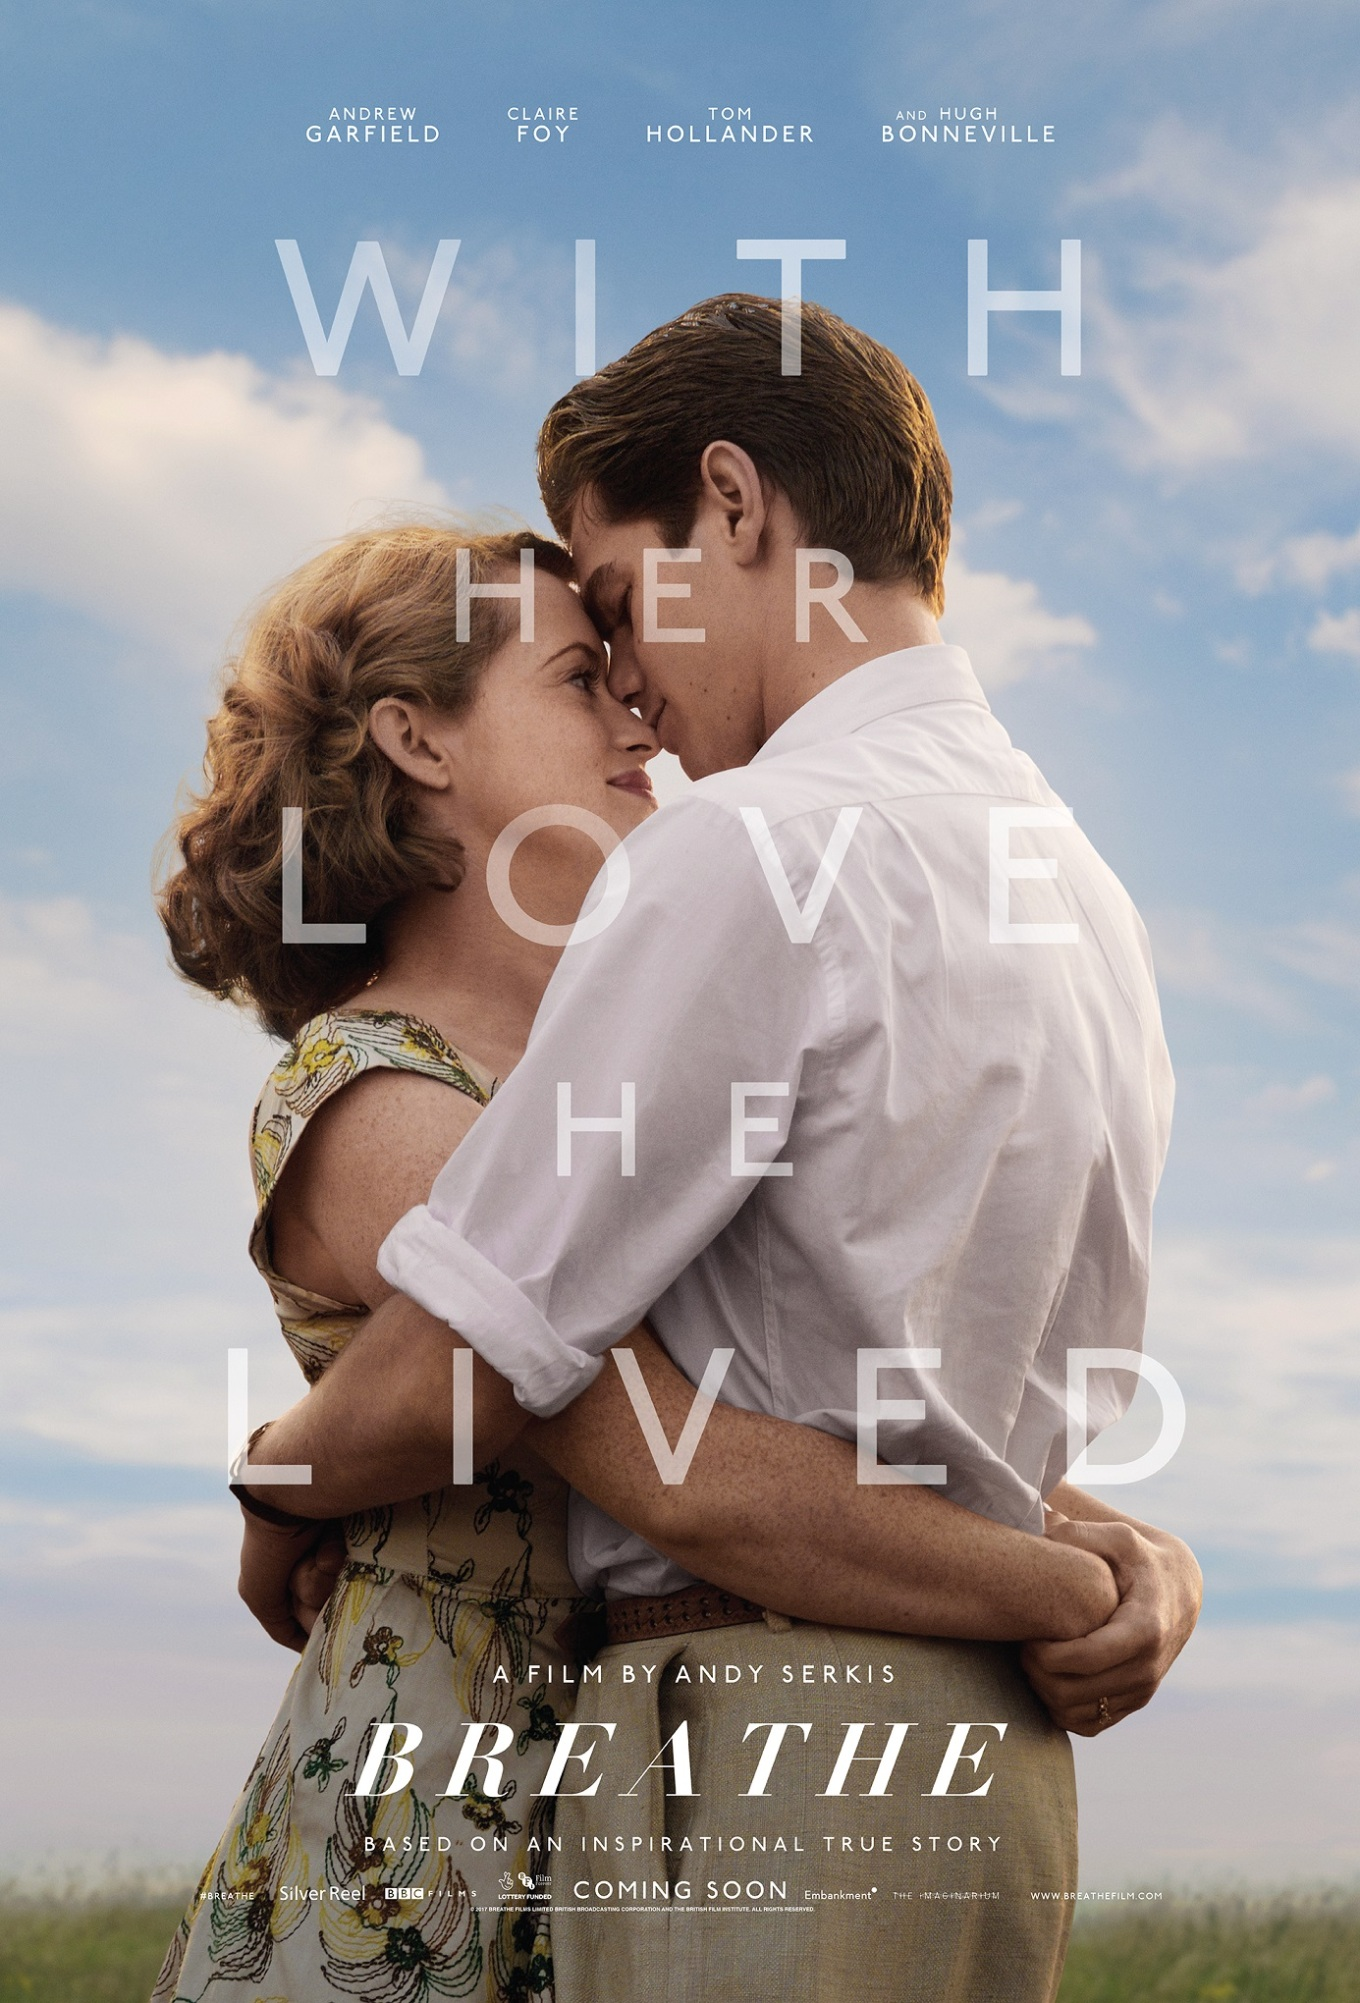 BREATHE poster art